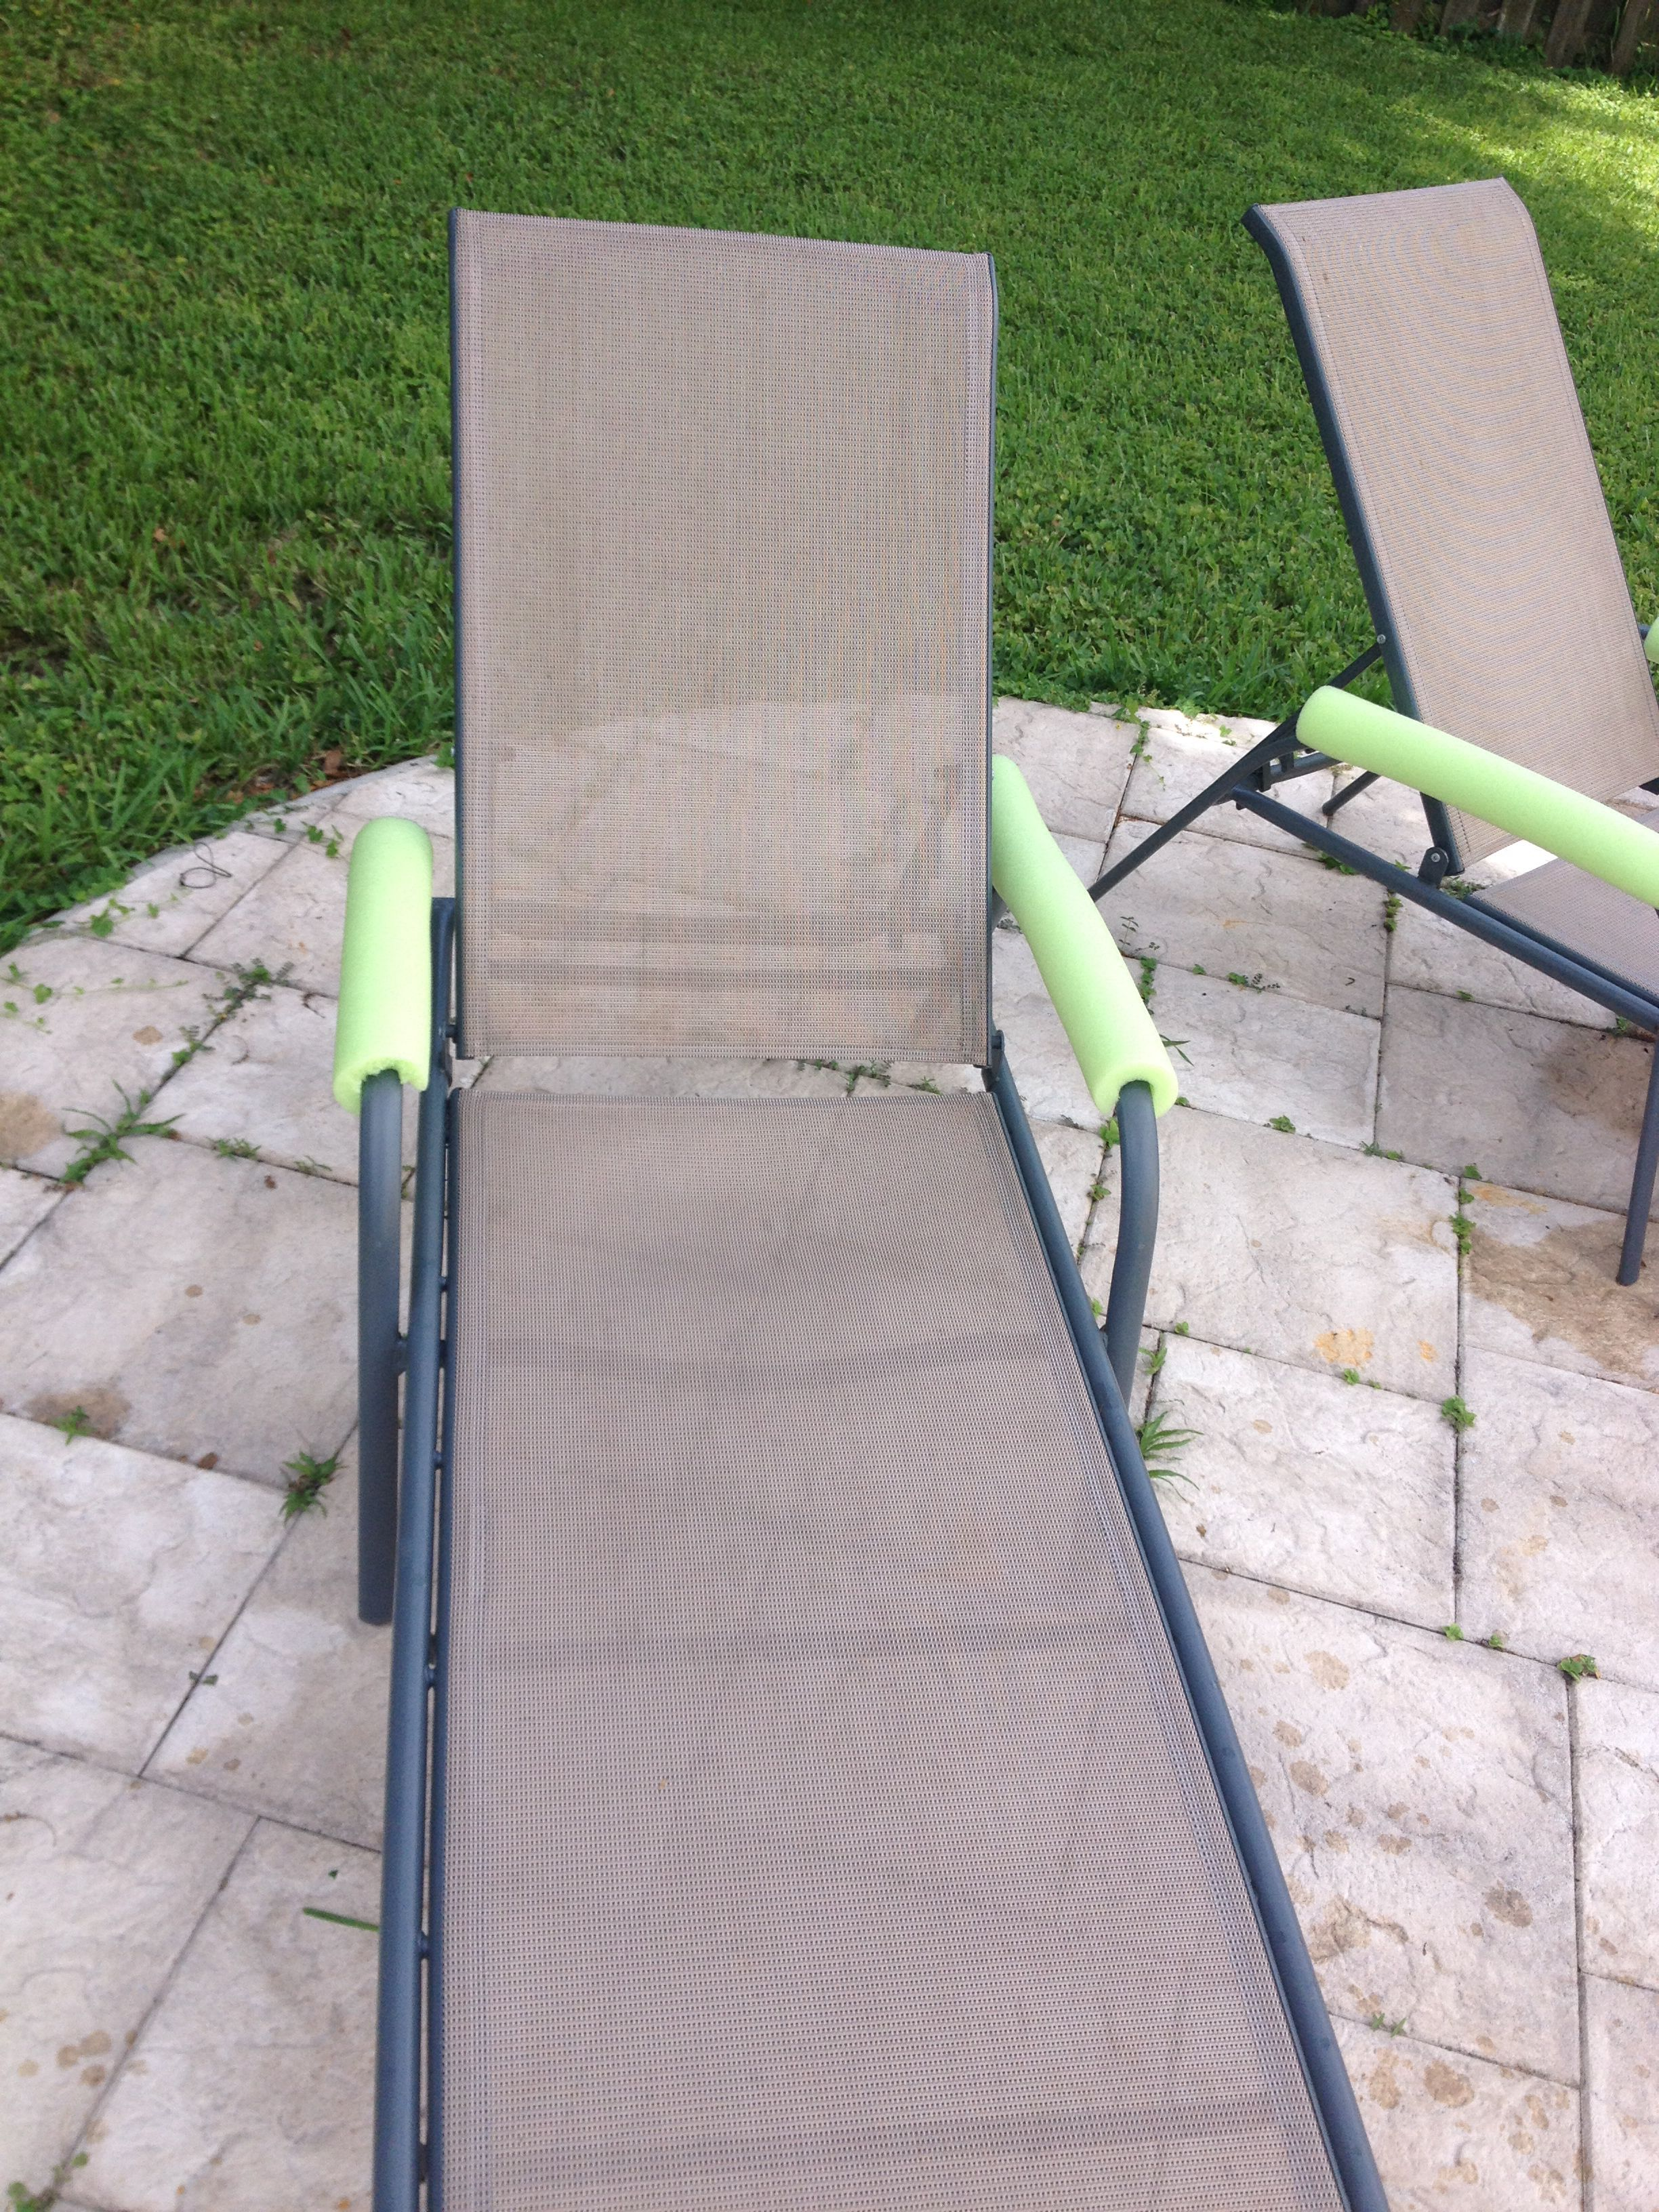 Arm Rests Too Hot On Those Lounge Chairs Cut A Pool Noodle In Half And